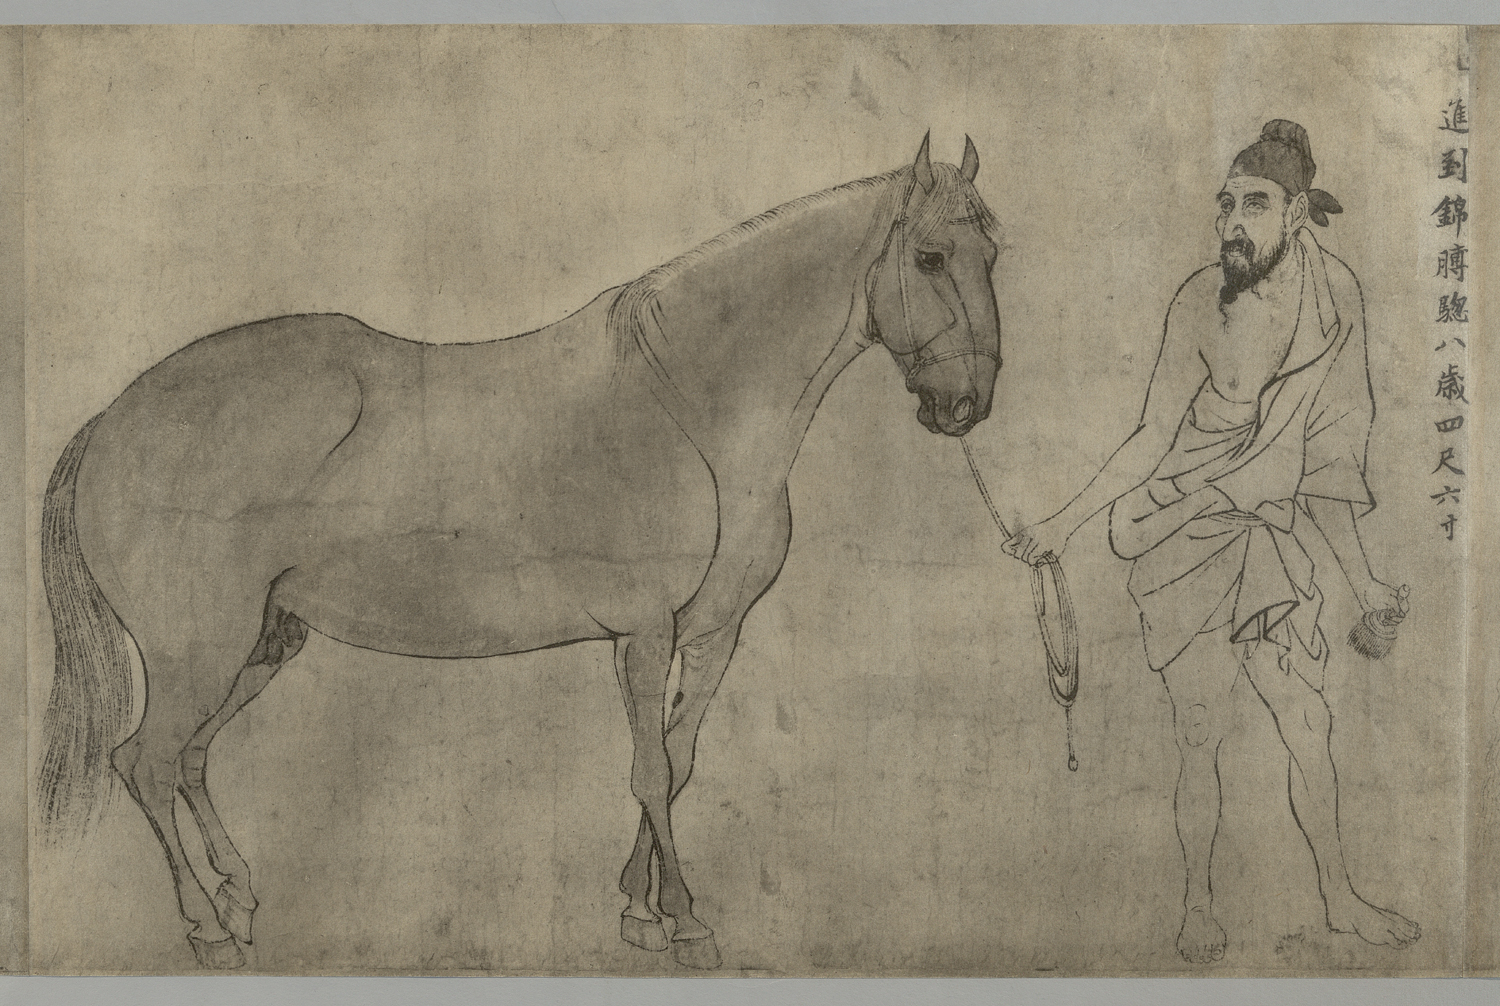 Detail of fourth groom and horse from Wuma Tu李公麟五馬圖, Li Gonglin, 1927.